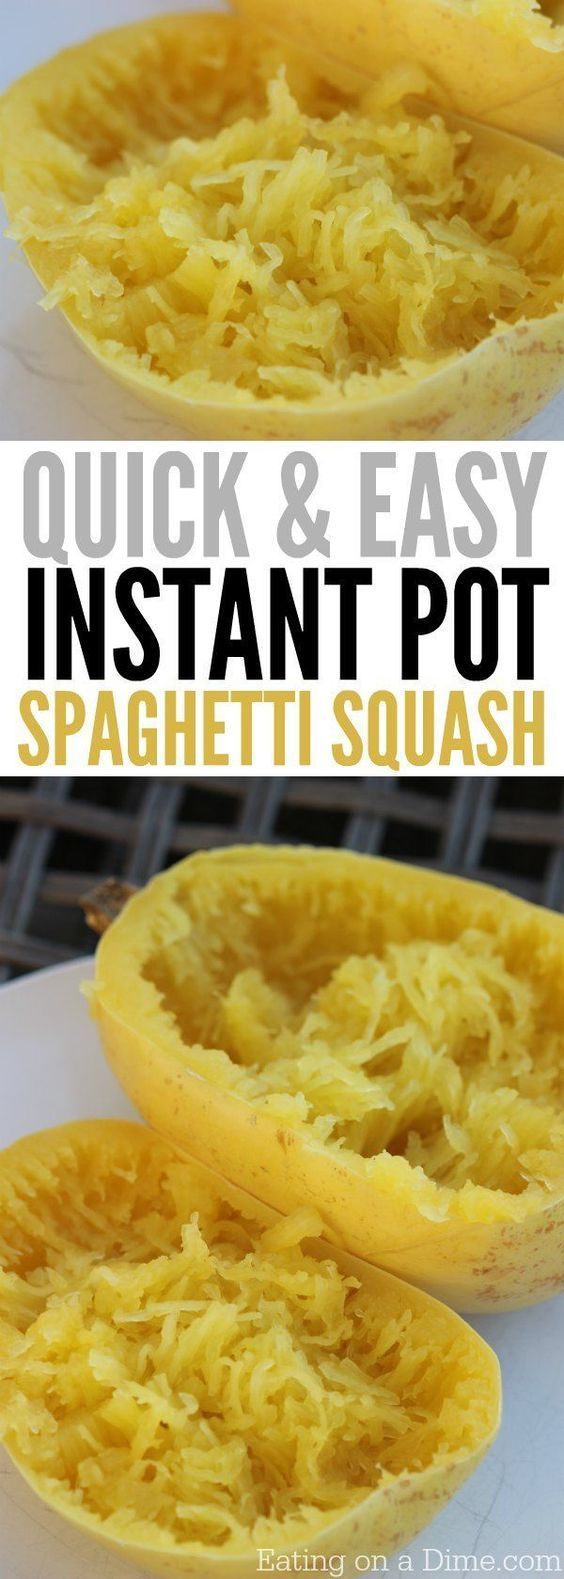 You are going to love this quick and easy Instant Pot Spaghetti Squash Recipe. How to make Spaghetti squash in minutes in the electric pressure cooker.